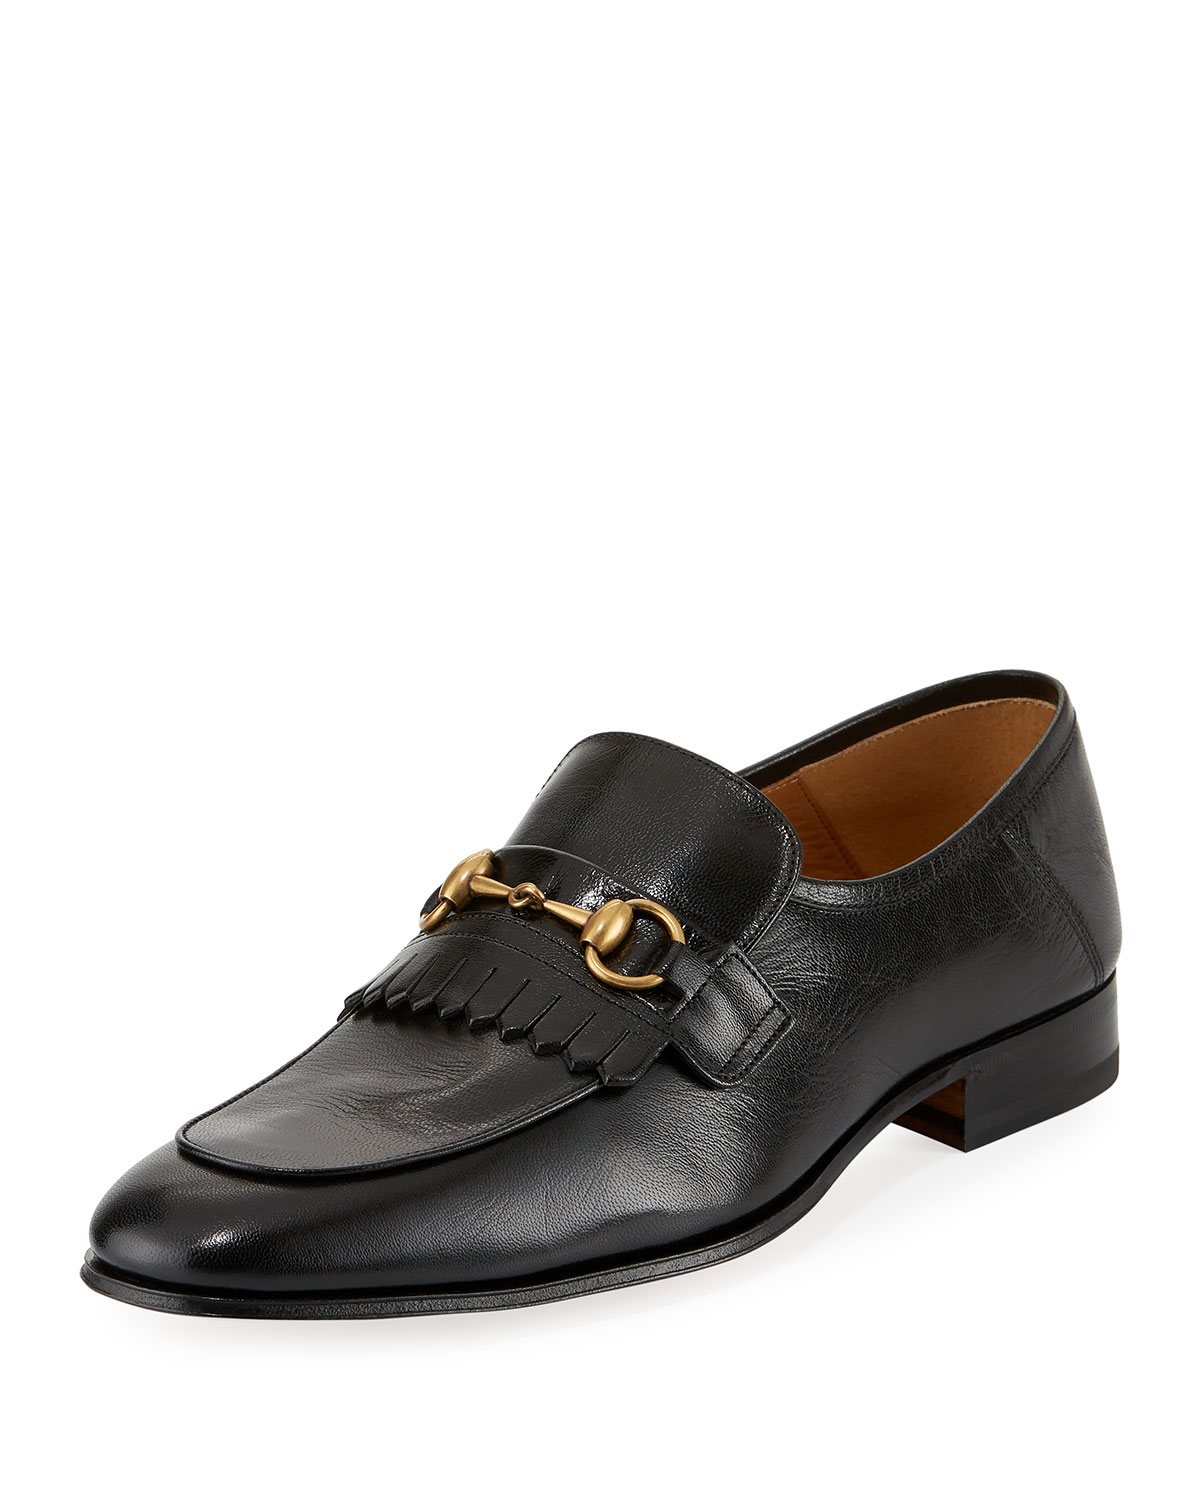 58044b108 Gucci Leather Fringe Horsebit Loafer